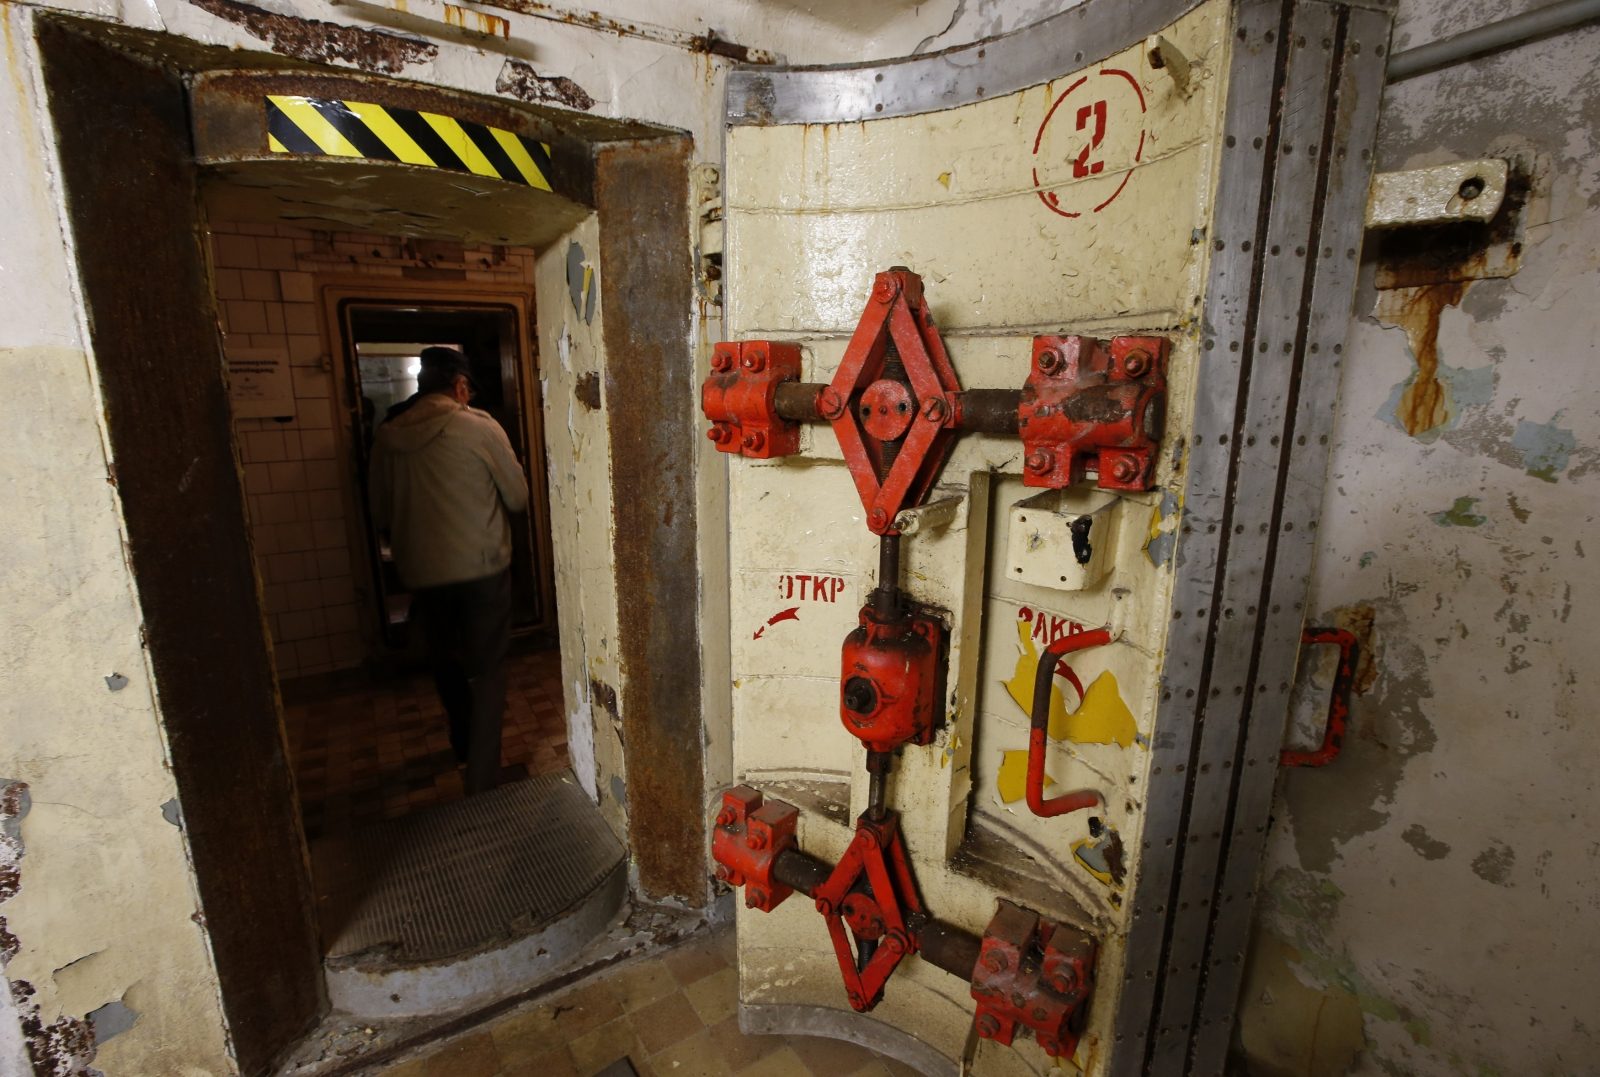 A guide walks next to a heavily fortified door to a bunker used after 1945 till 1994 by the Soviet army as the so-called RANET communications room in Wuensdorf, south of Berlin August 30, 2014. Twenty years ago the last Soviet soldier left Germany aft